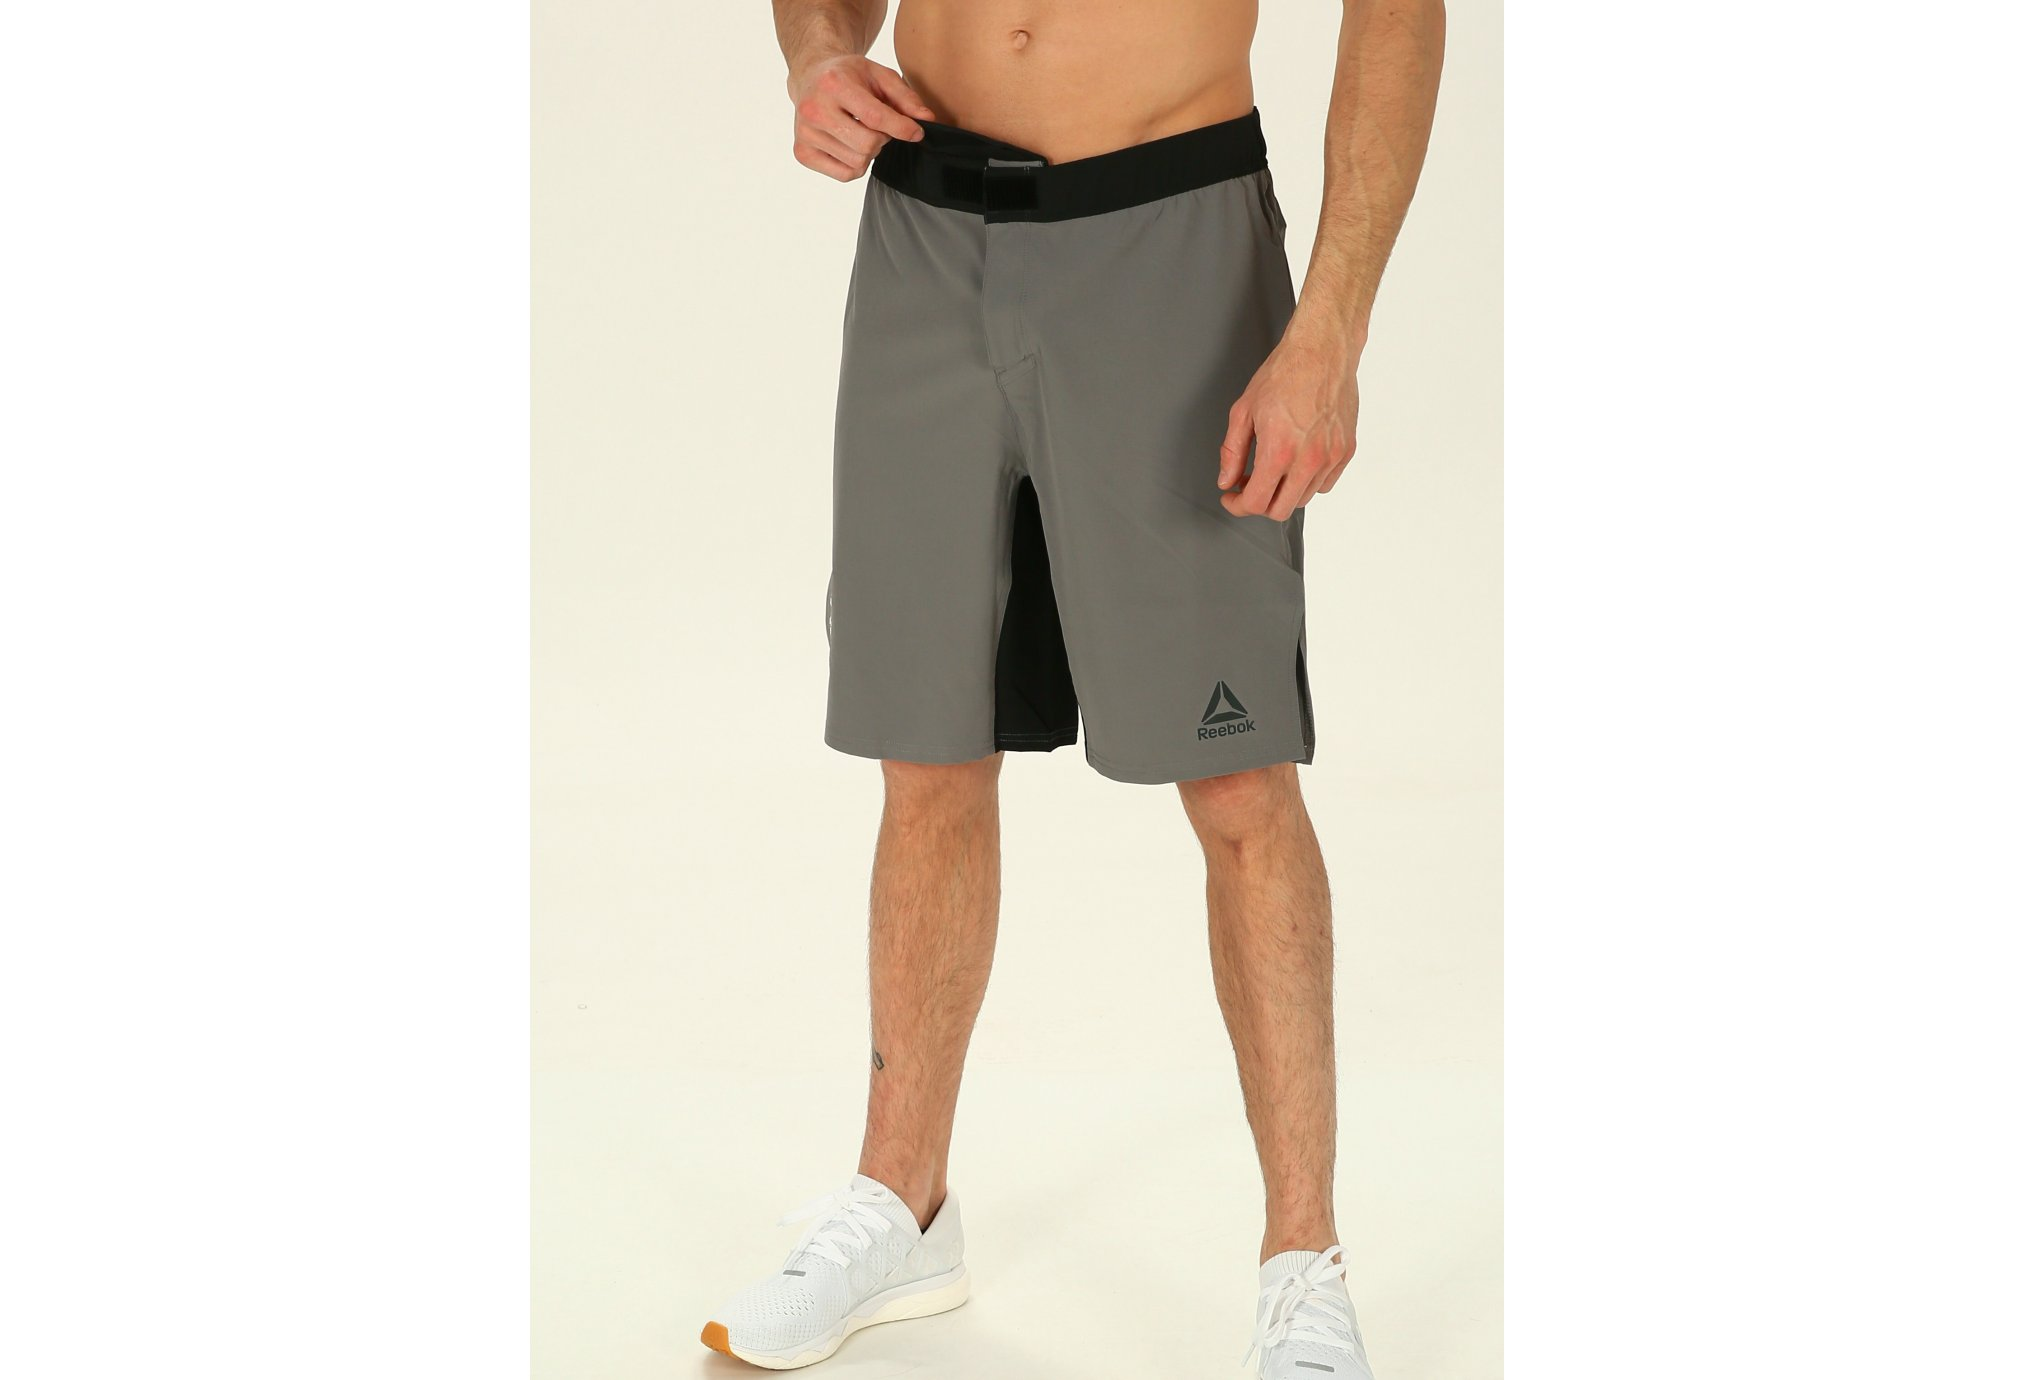 Adidas Pantalon 3 Stripes M Essentials wPkZOXuTi